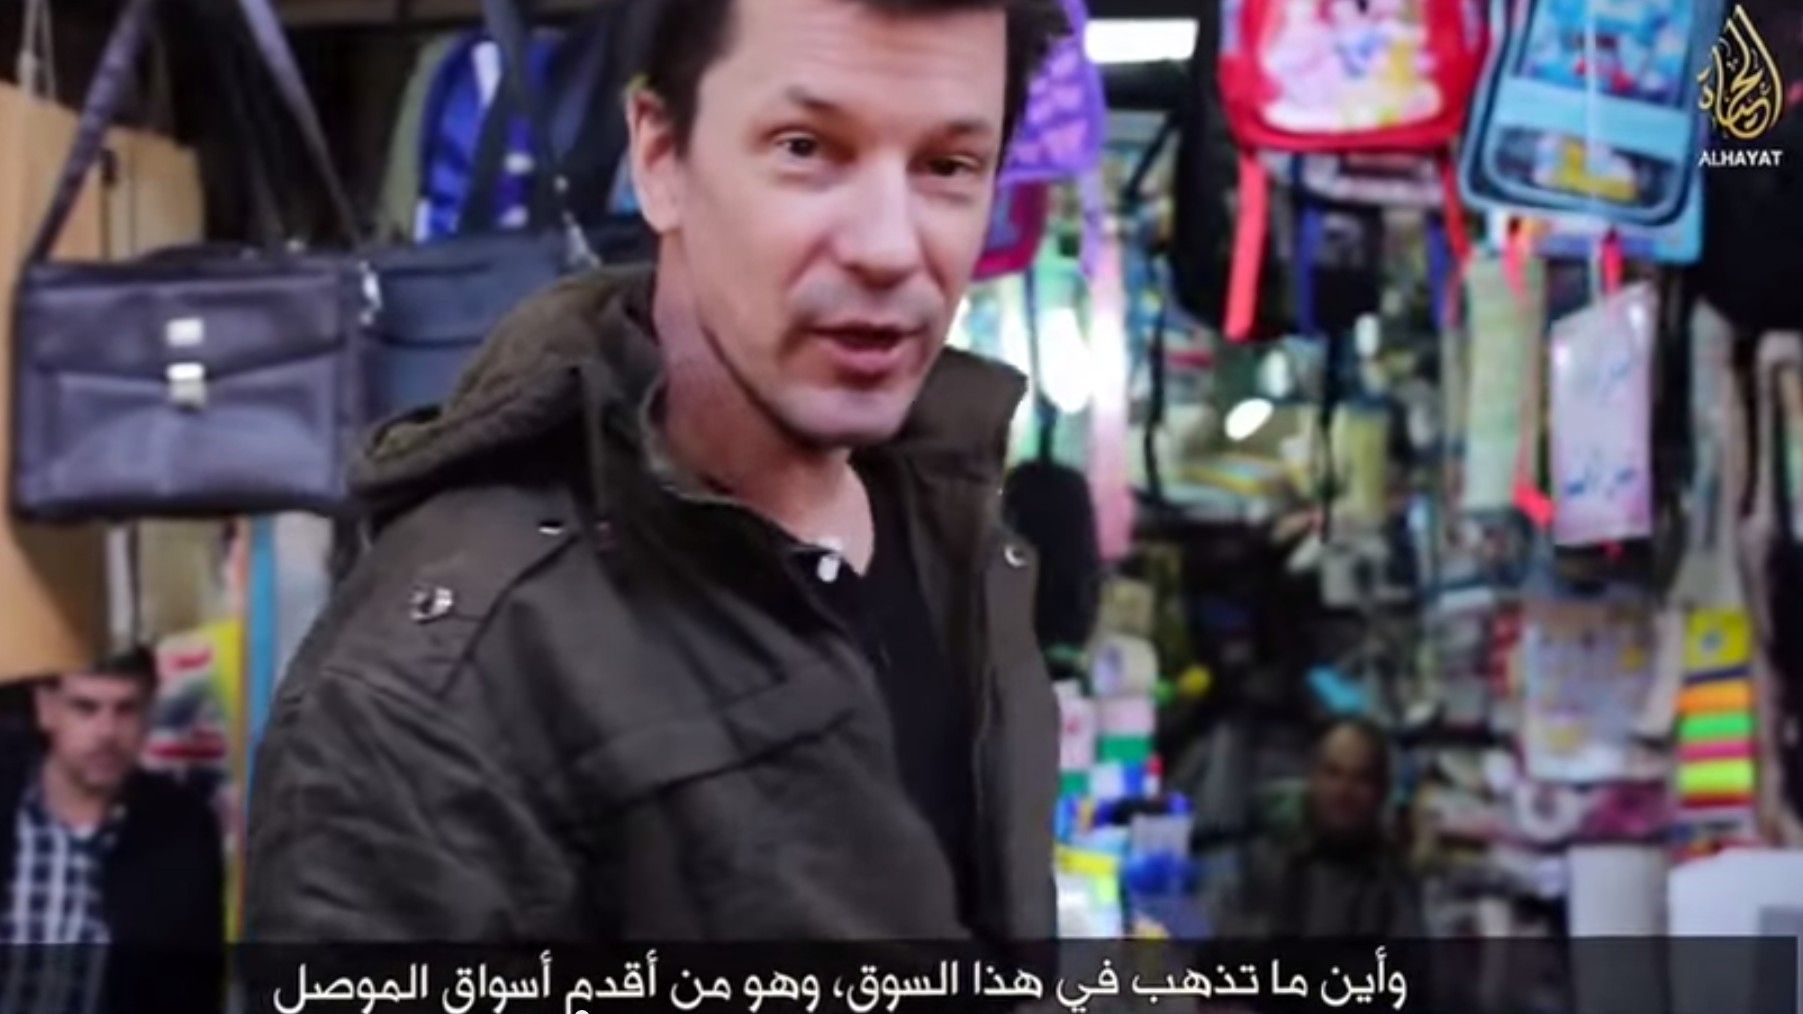 Hostage John Cantlie Takes on Mosul in Eighth Islamic State Propaganda Video